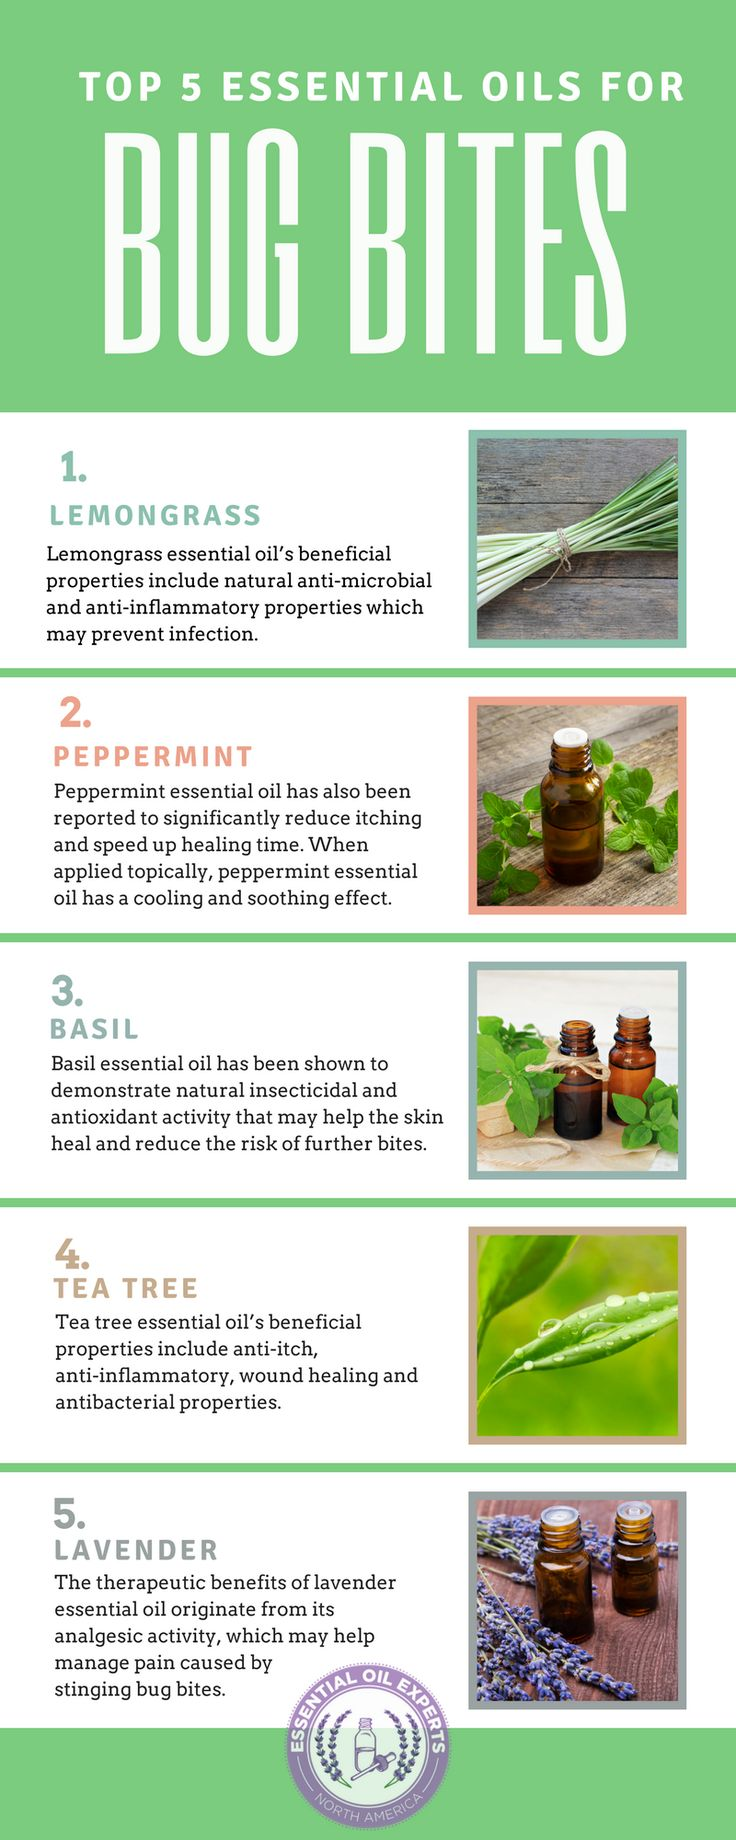 I have tea tree and lavender on hand. The Top 5 Essential Oils for Bug Bites: Insect, Mosquito, Spider, Tick, Ant & Bed Bug Bites